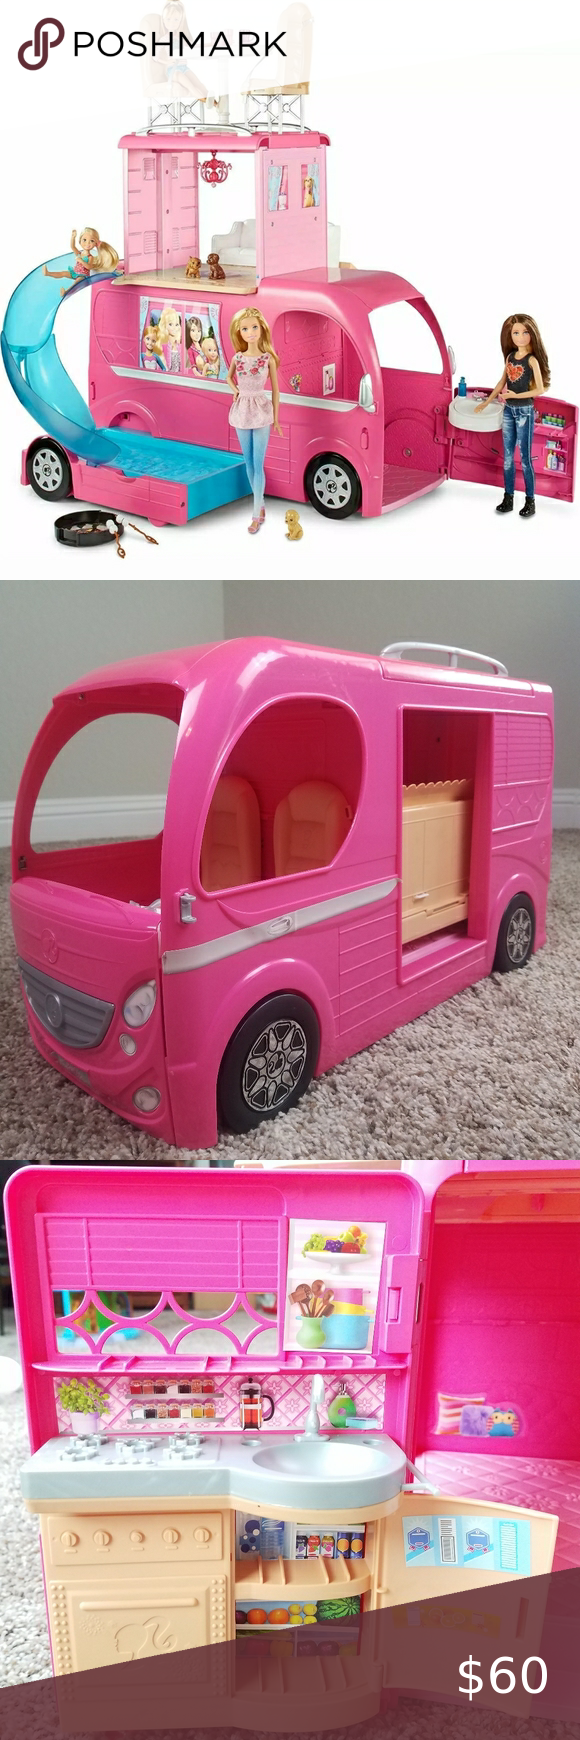 Barbie Camping Rv Kids Toy Vehicle Barbie Camper Rv Kids Toys Driver Cab Transforms Into Bathroom Inside Has Living And Matt In 2020 Barbie Camper Kids Toys Rv Camping